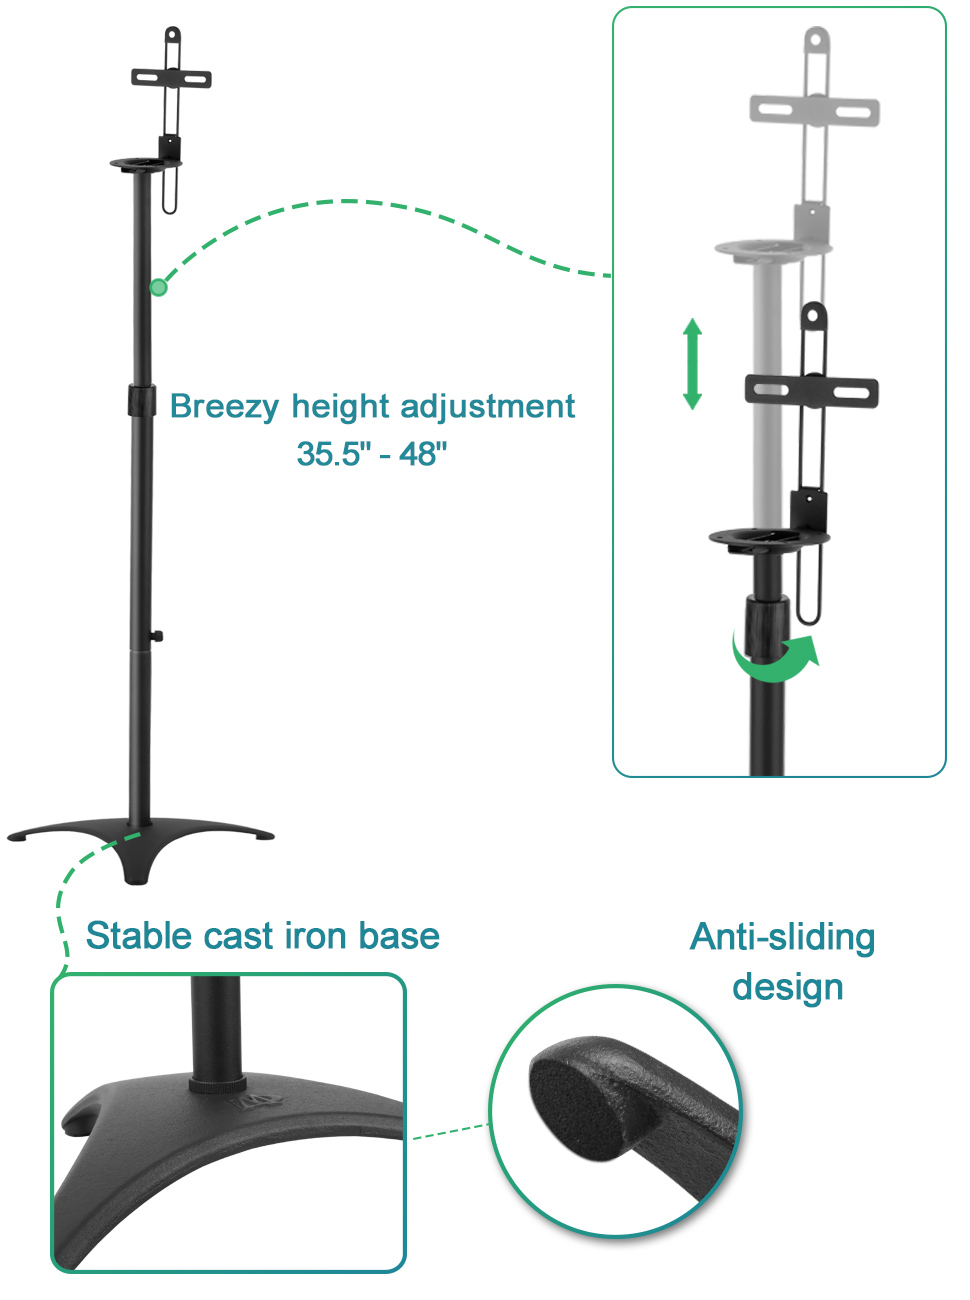 Mounting Dream Md5401 Height Adjustable Speaker Stands Figure Diagram Showing The Placement Of Surround Sound Speakers Stand